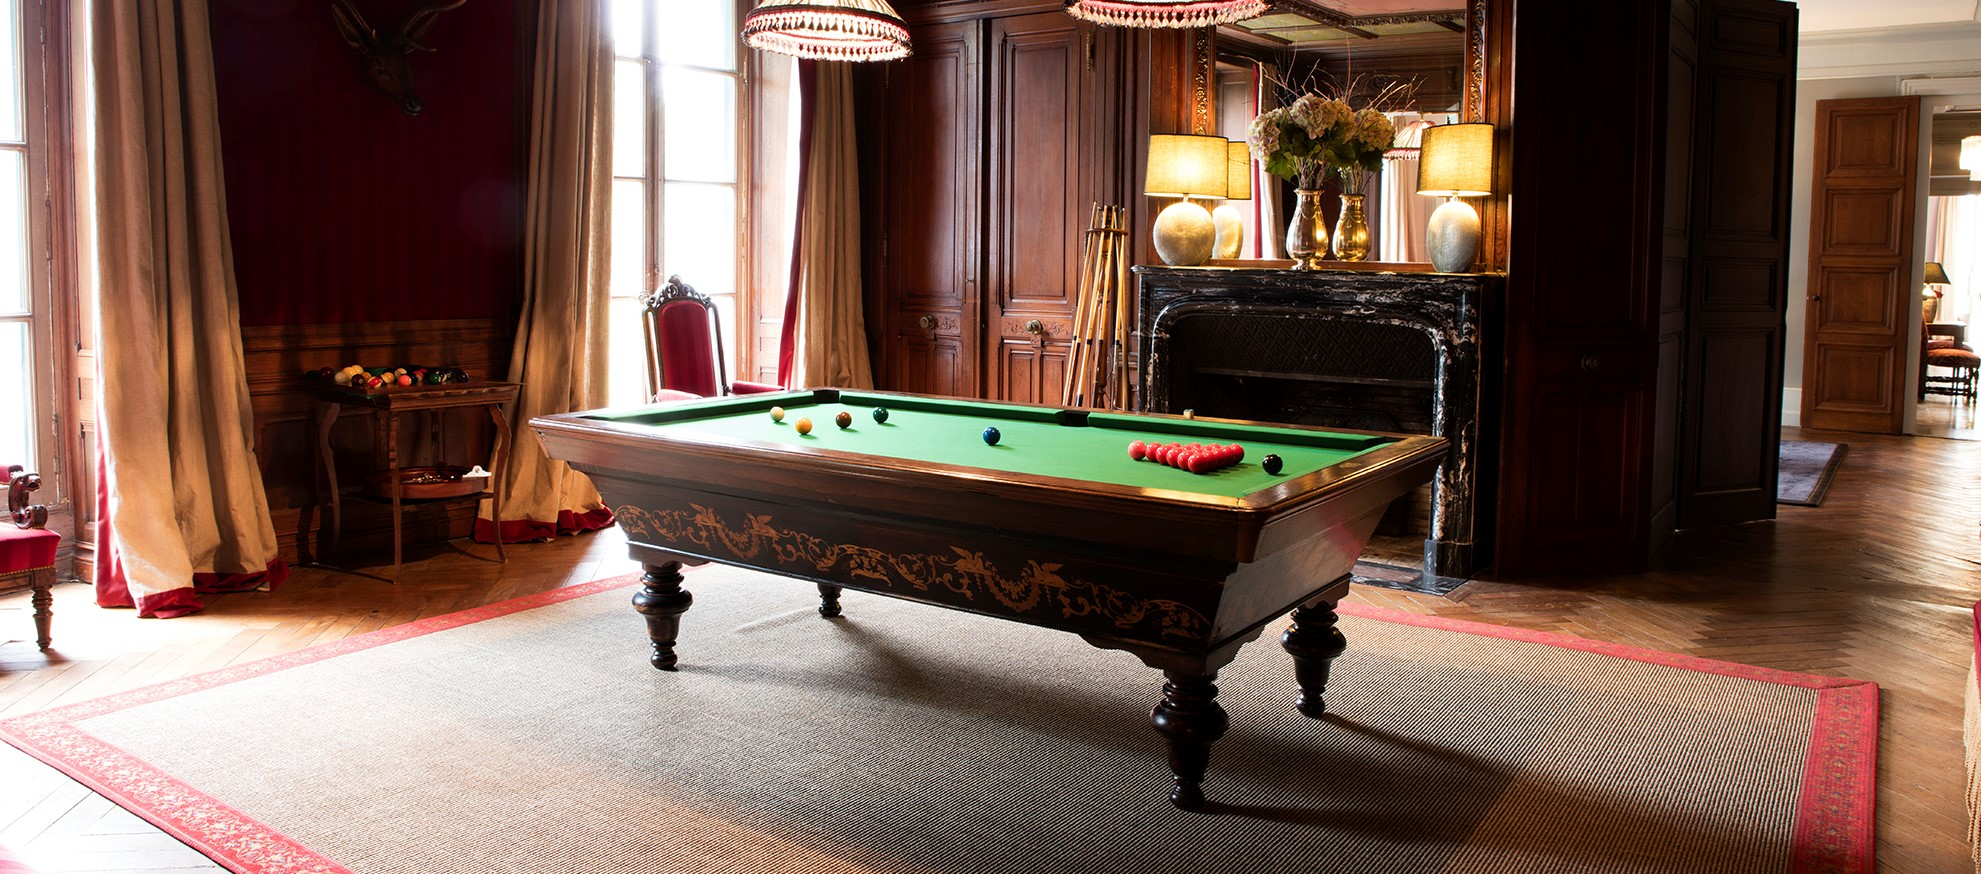 Billard Table at Chateaufort